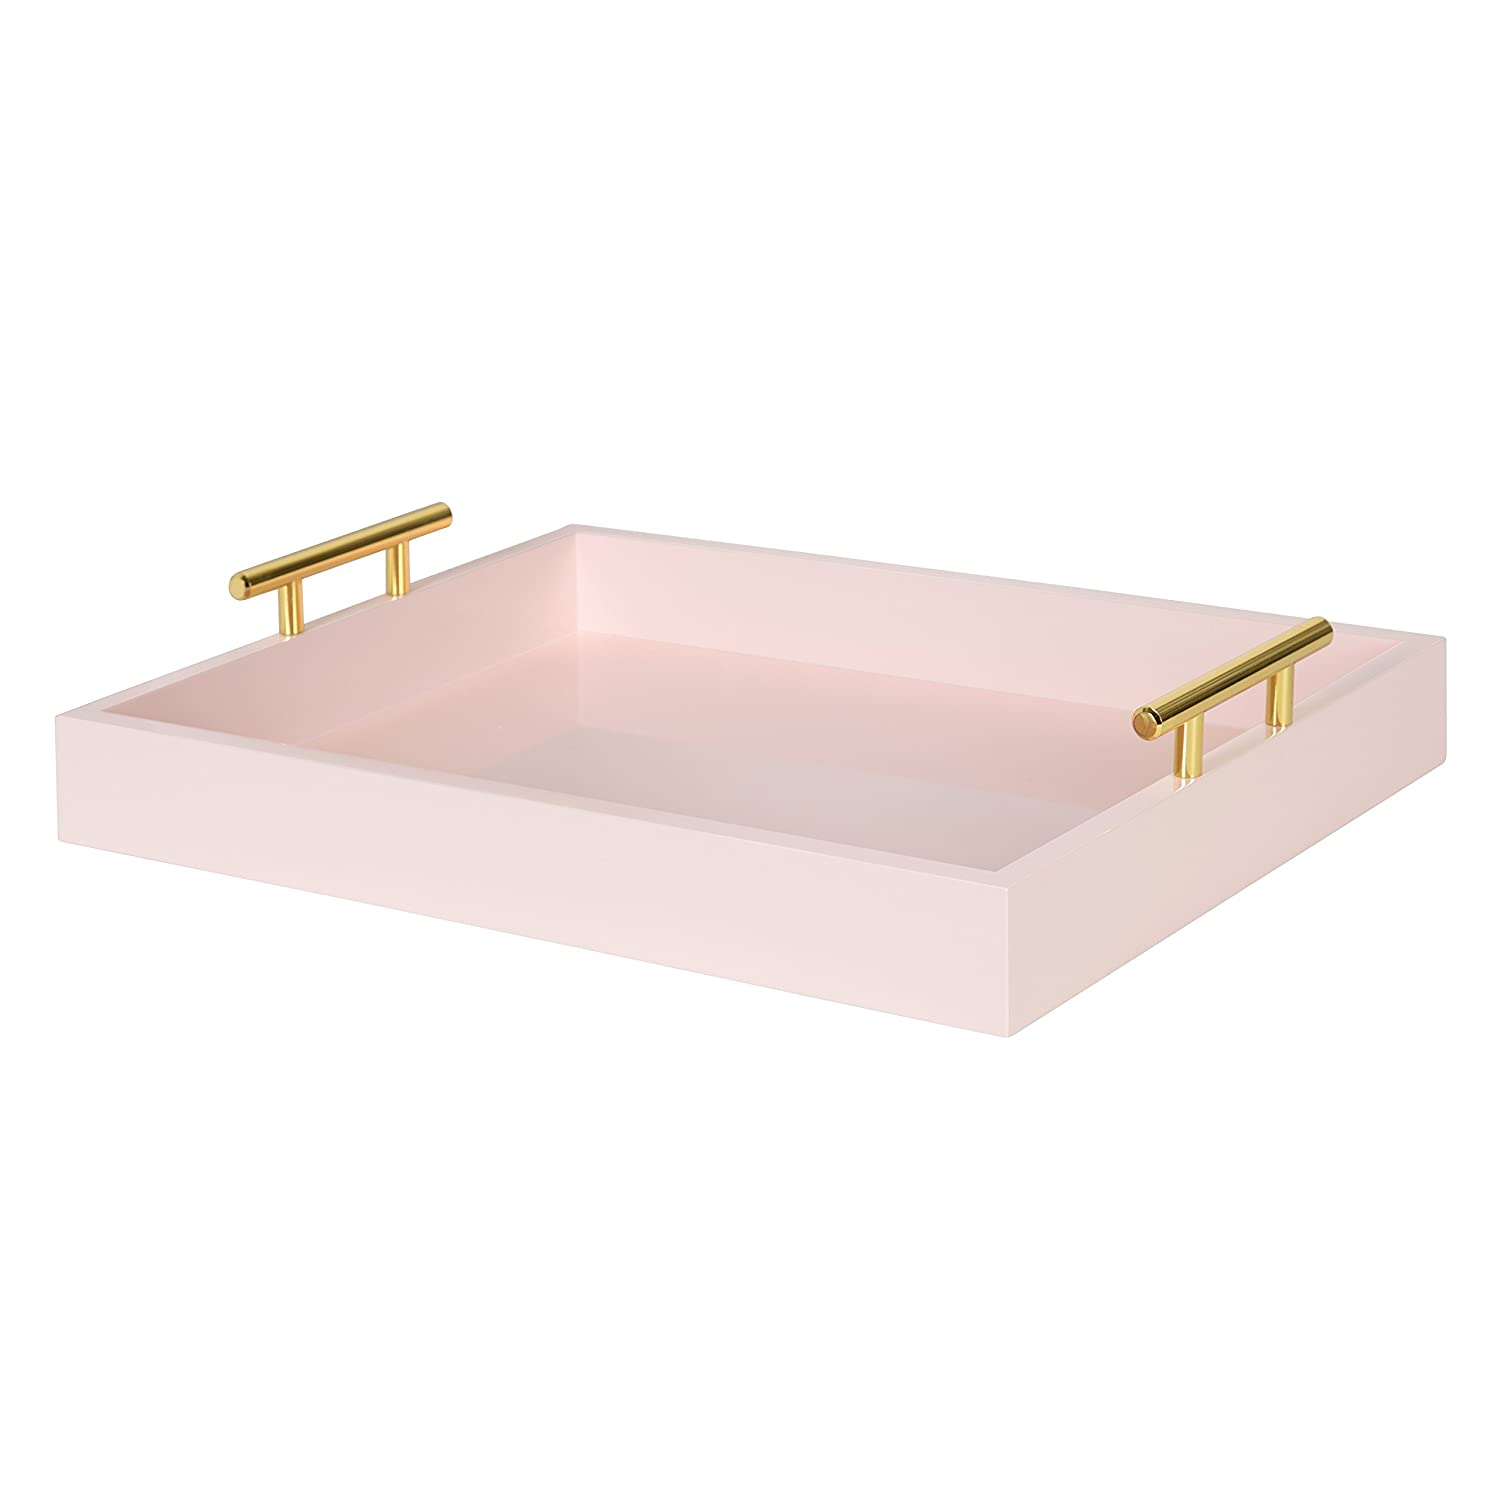 Kate and Laurel Lipton Decorative Wood Tray with Metal Handles, 16.5x12.25, Pink